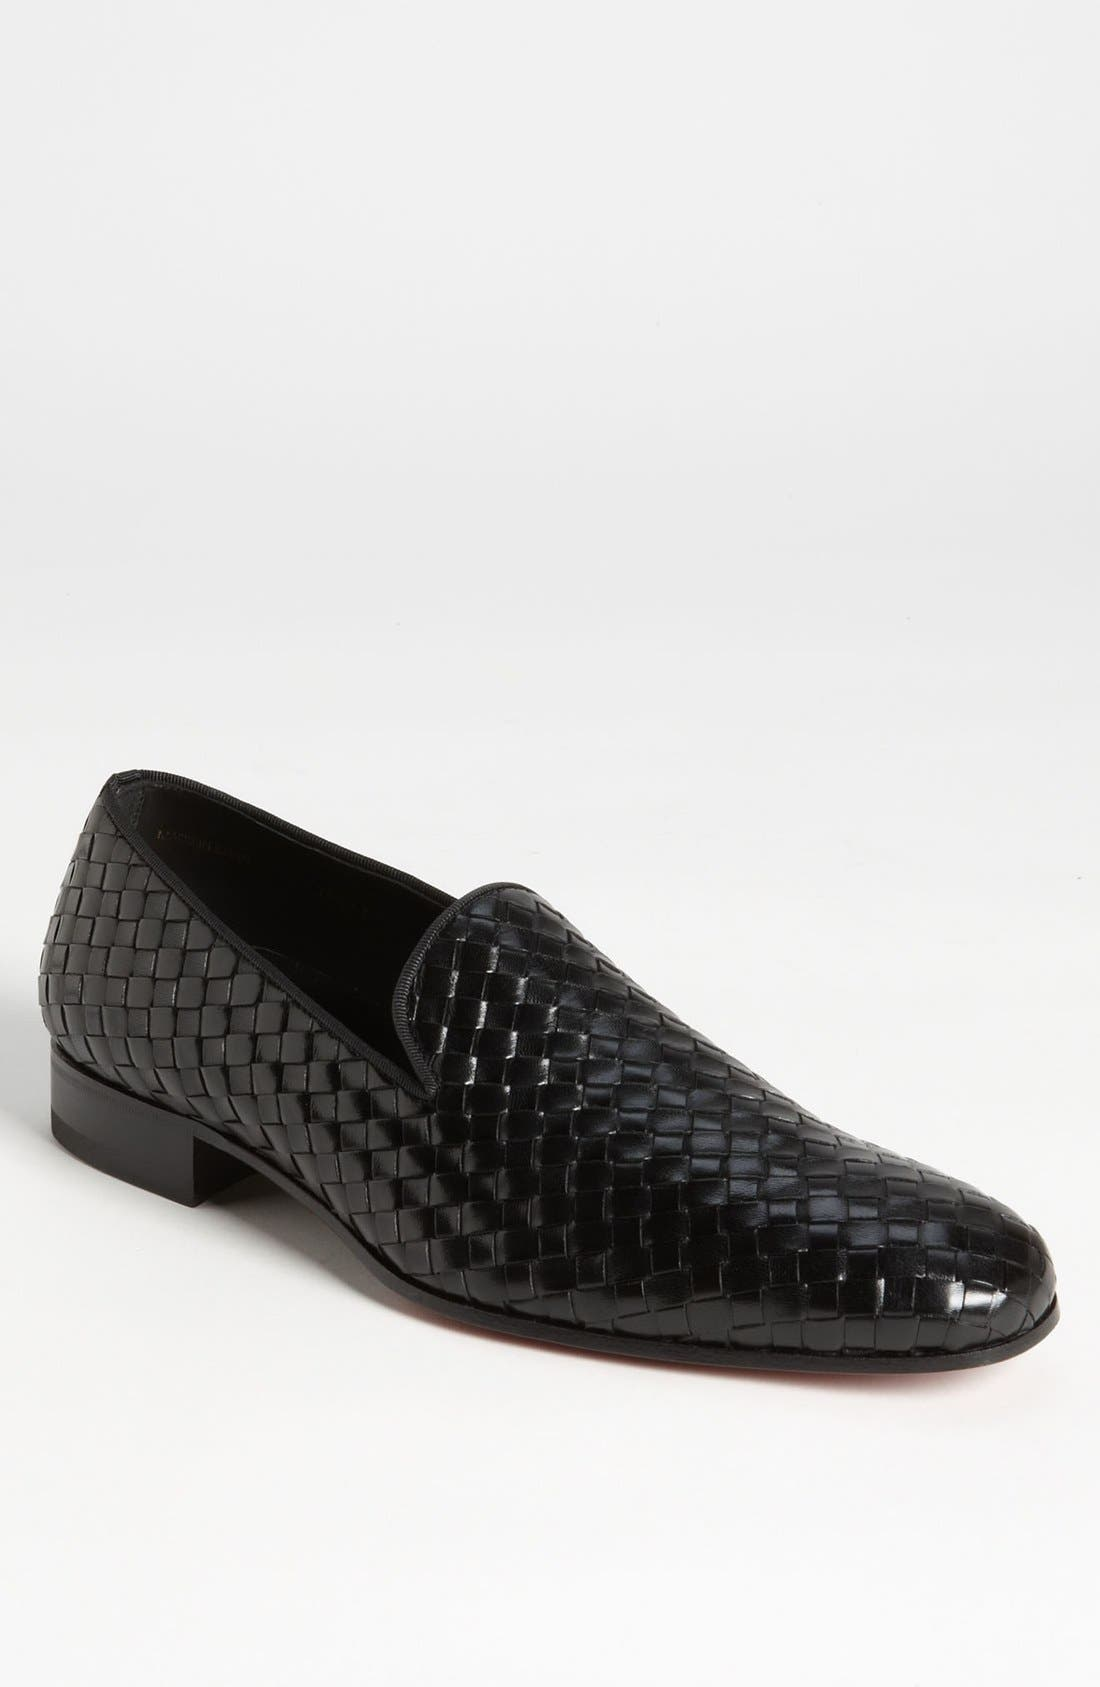 Alternate Image 1 Selected - Mezlan 'Macario' Loafer